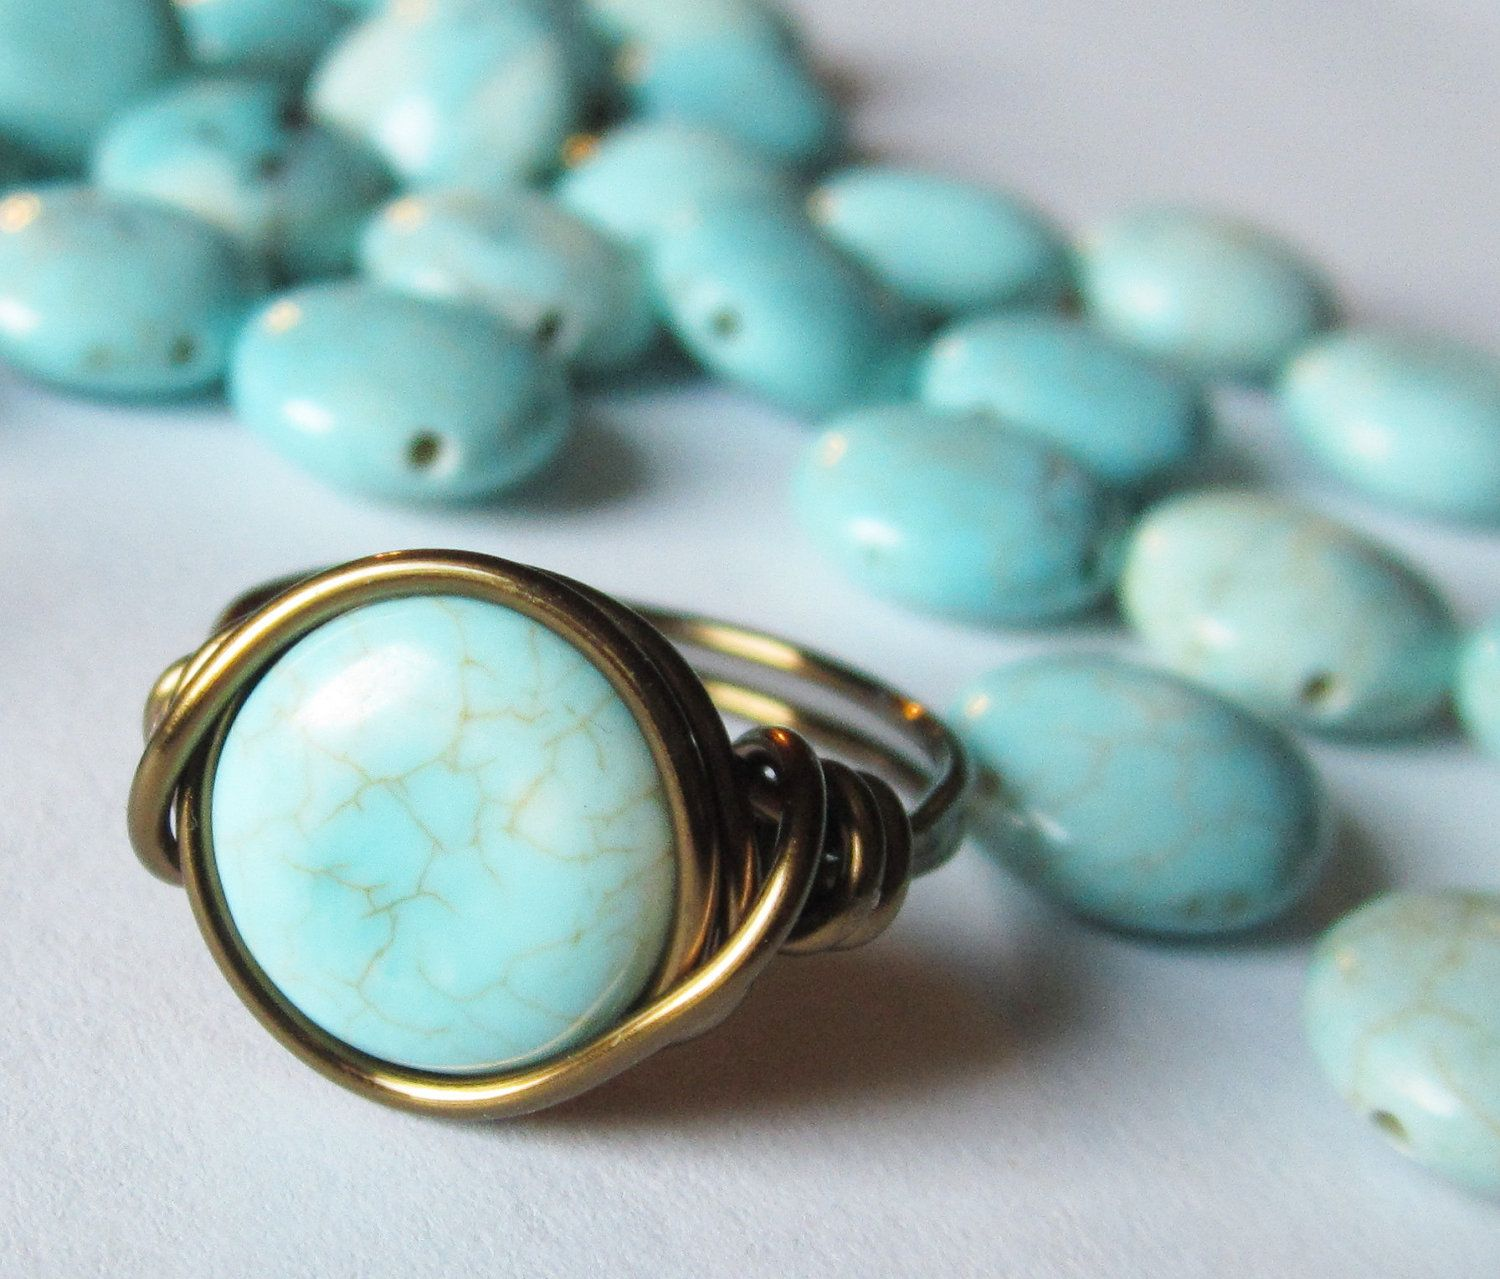 Boho Jewelry | WANTS & M0STLY NEEDS :) | Pinterest | Turquoise rings ...